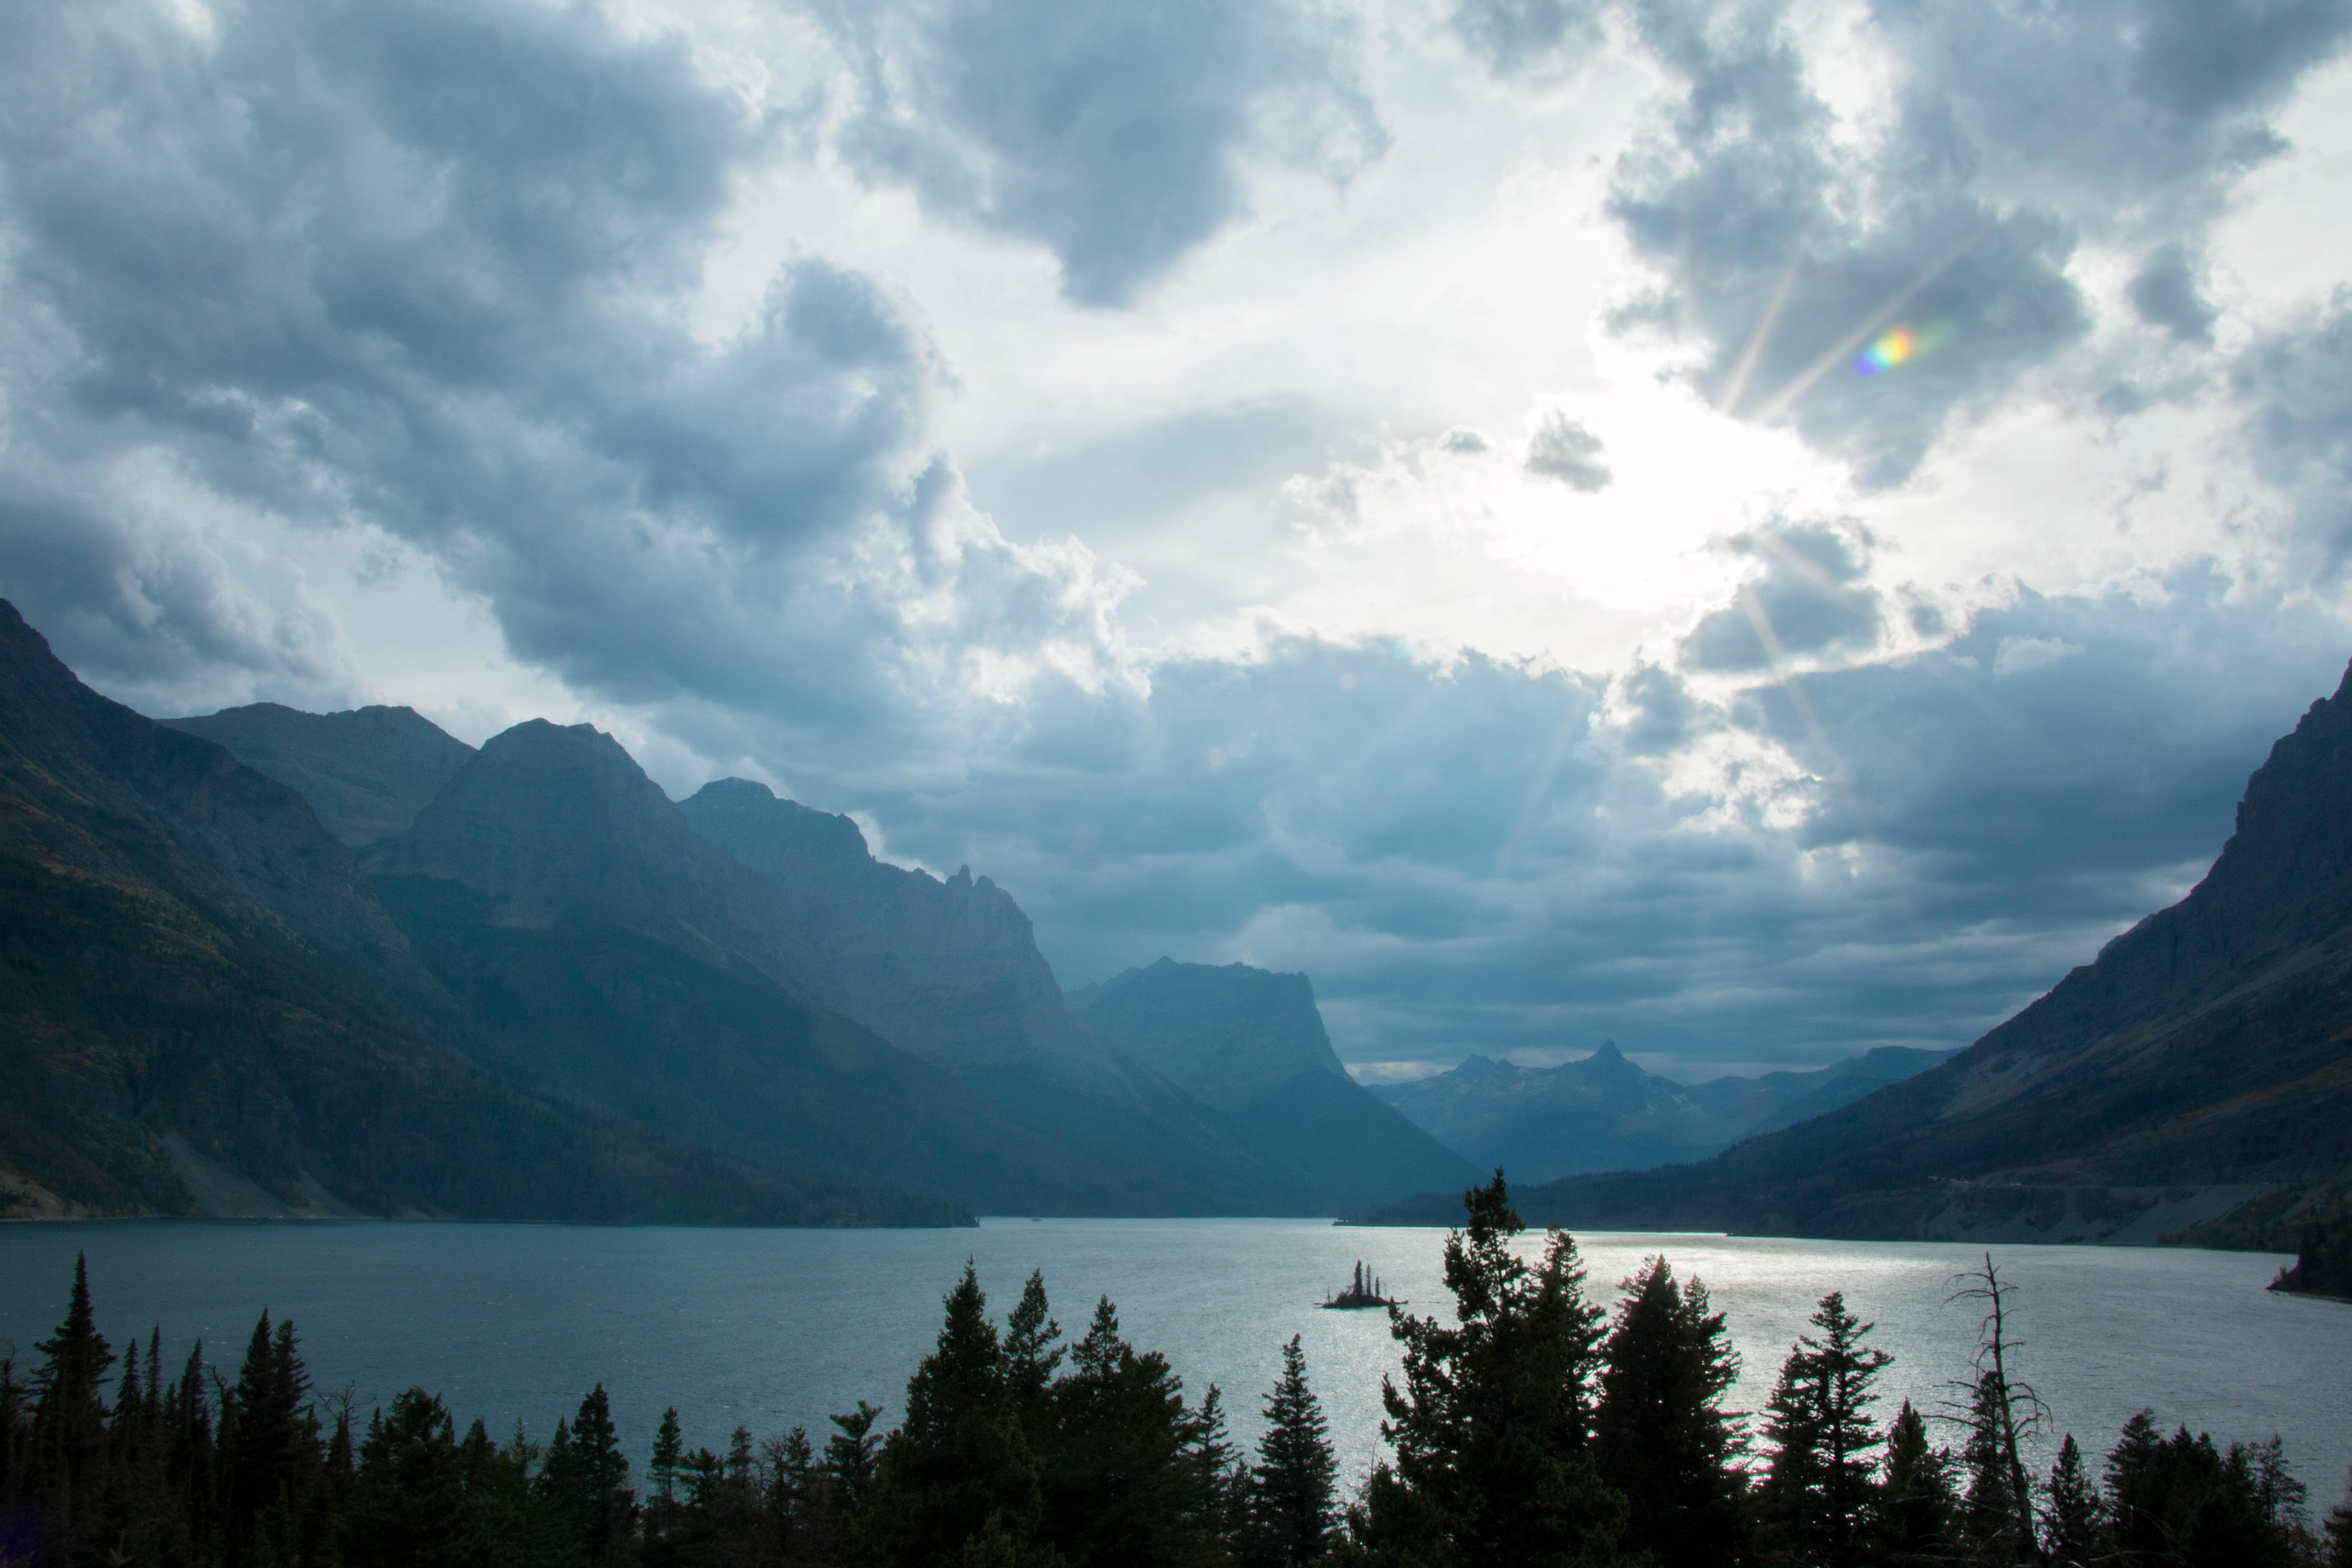 Going wallpapers photos and desktop backgrounds up to 8k - Glacier national park wallpaper ...